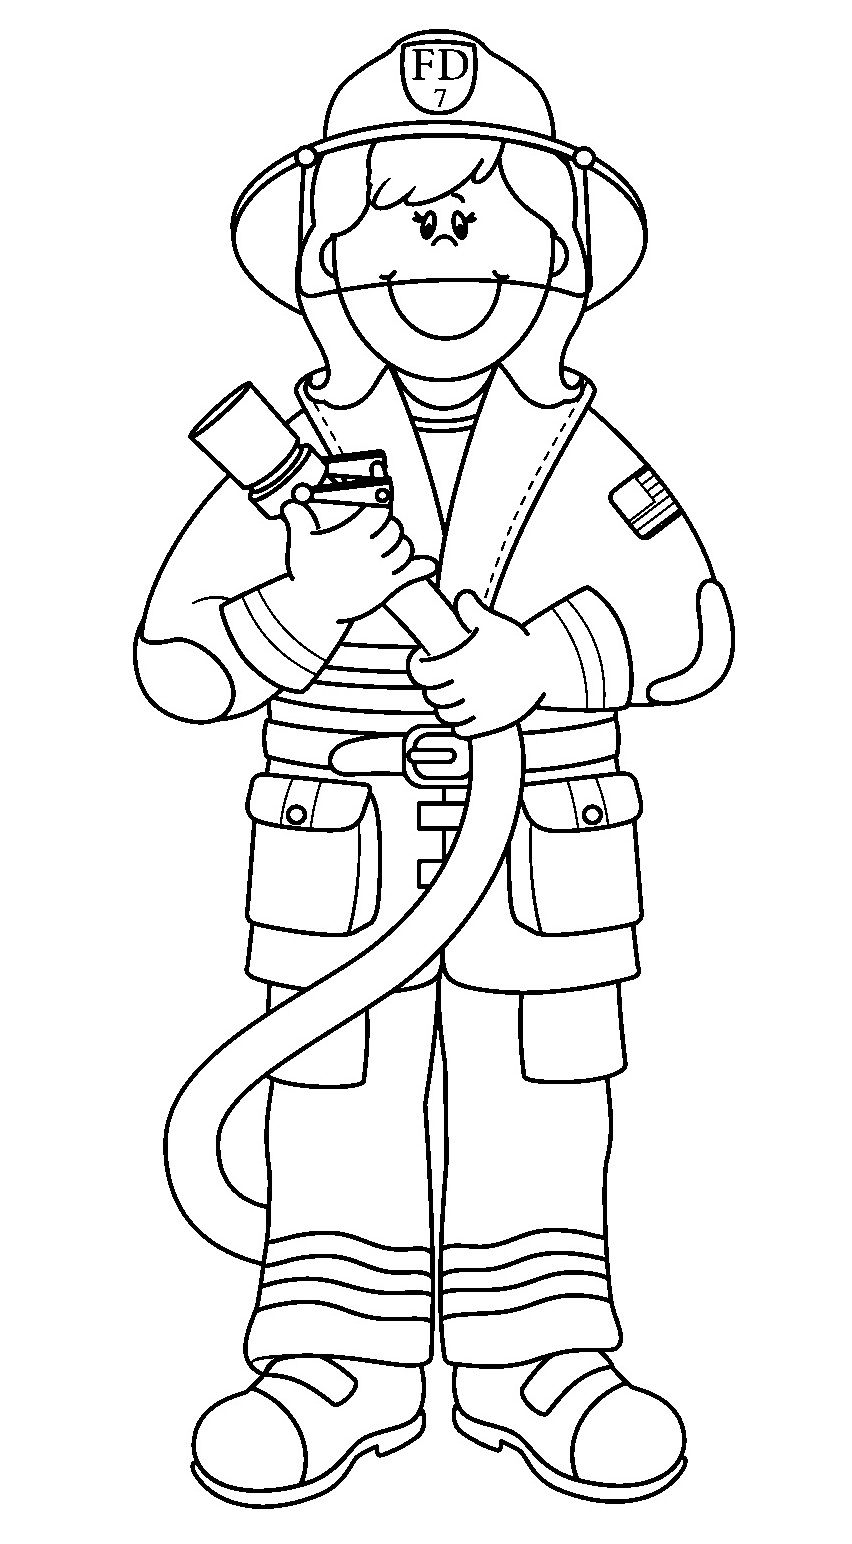 fireman coloring page # 0